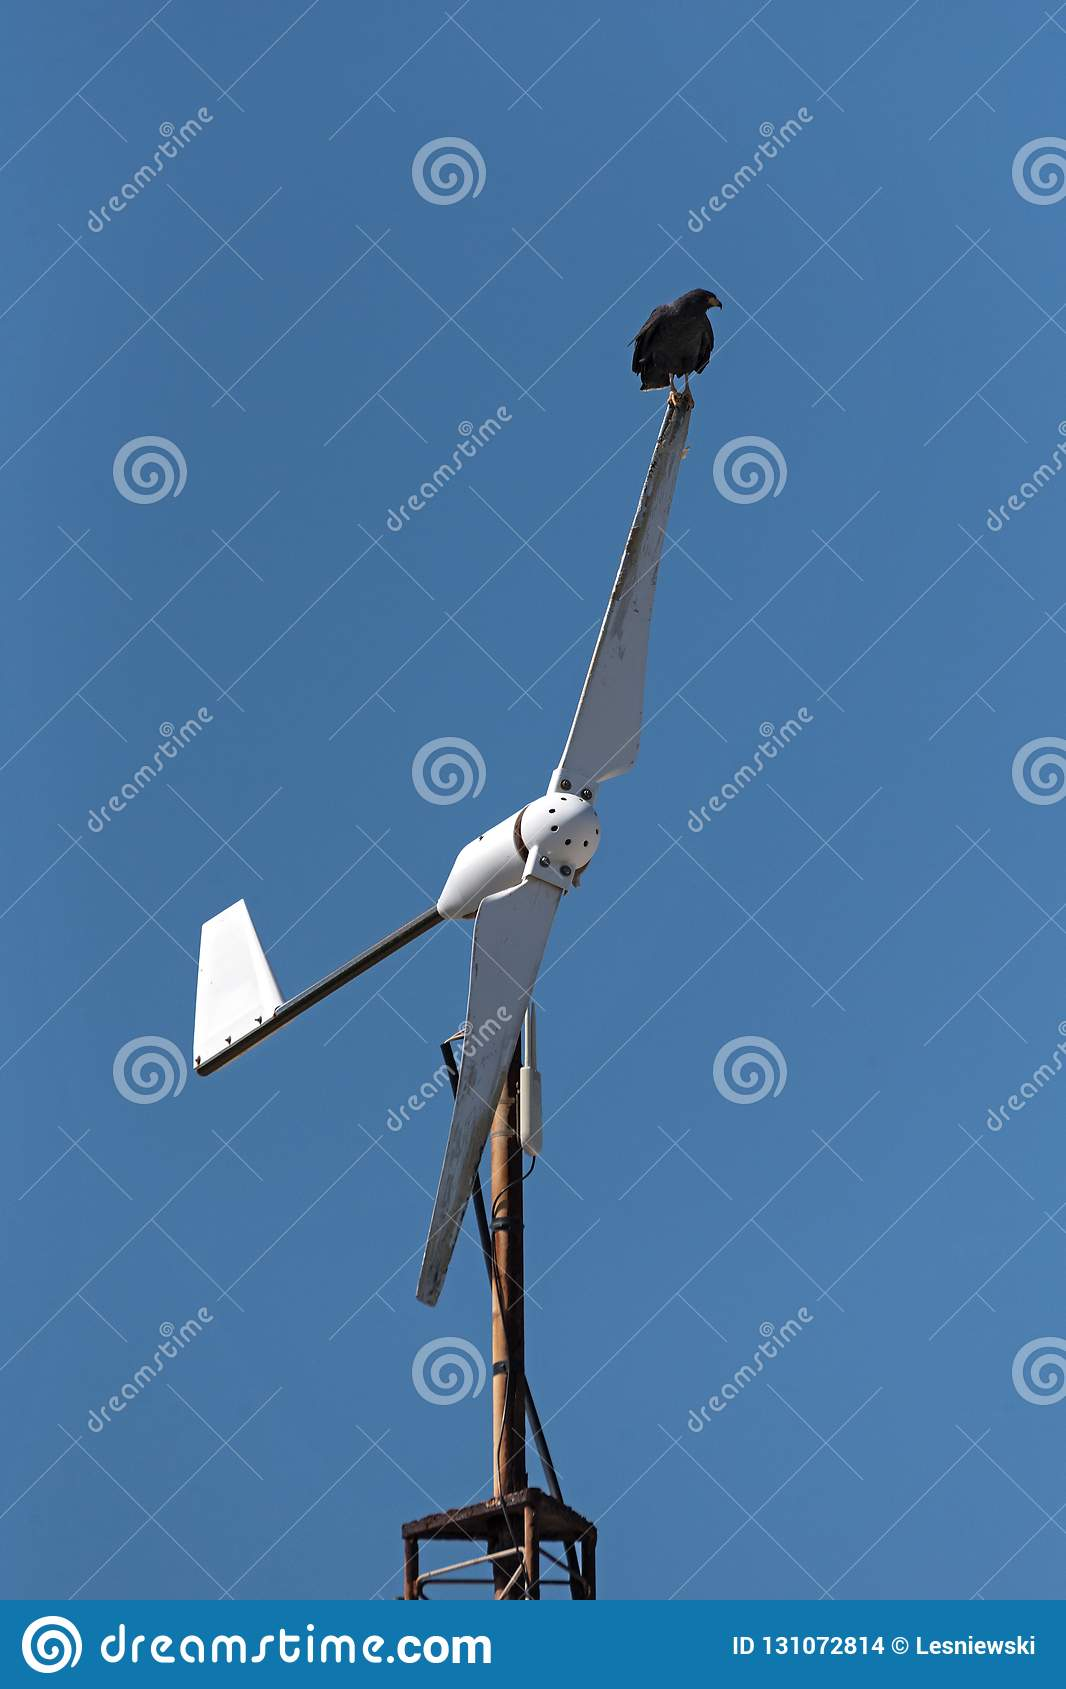 Young Black Accipitriformes Sits On A Rotor Blade Of A Windmill